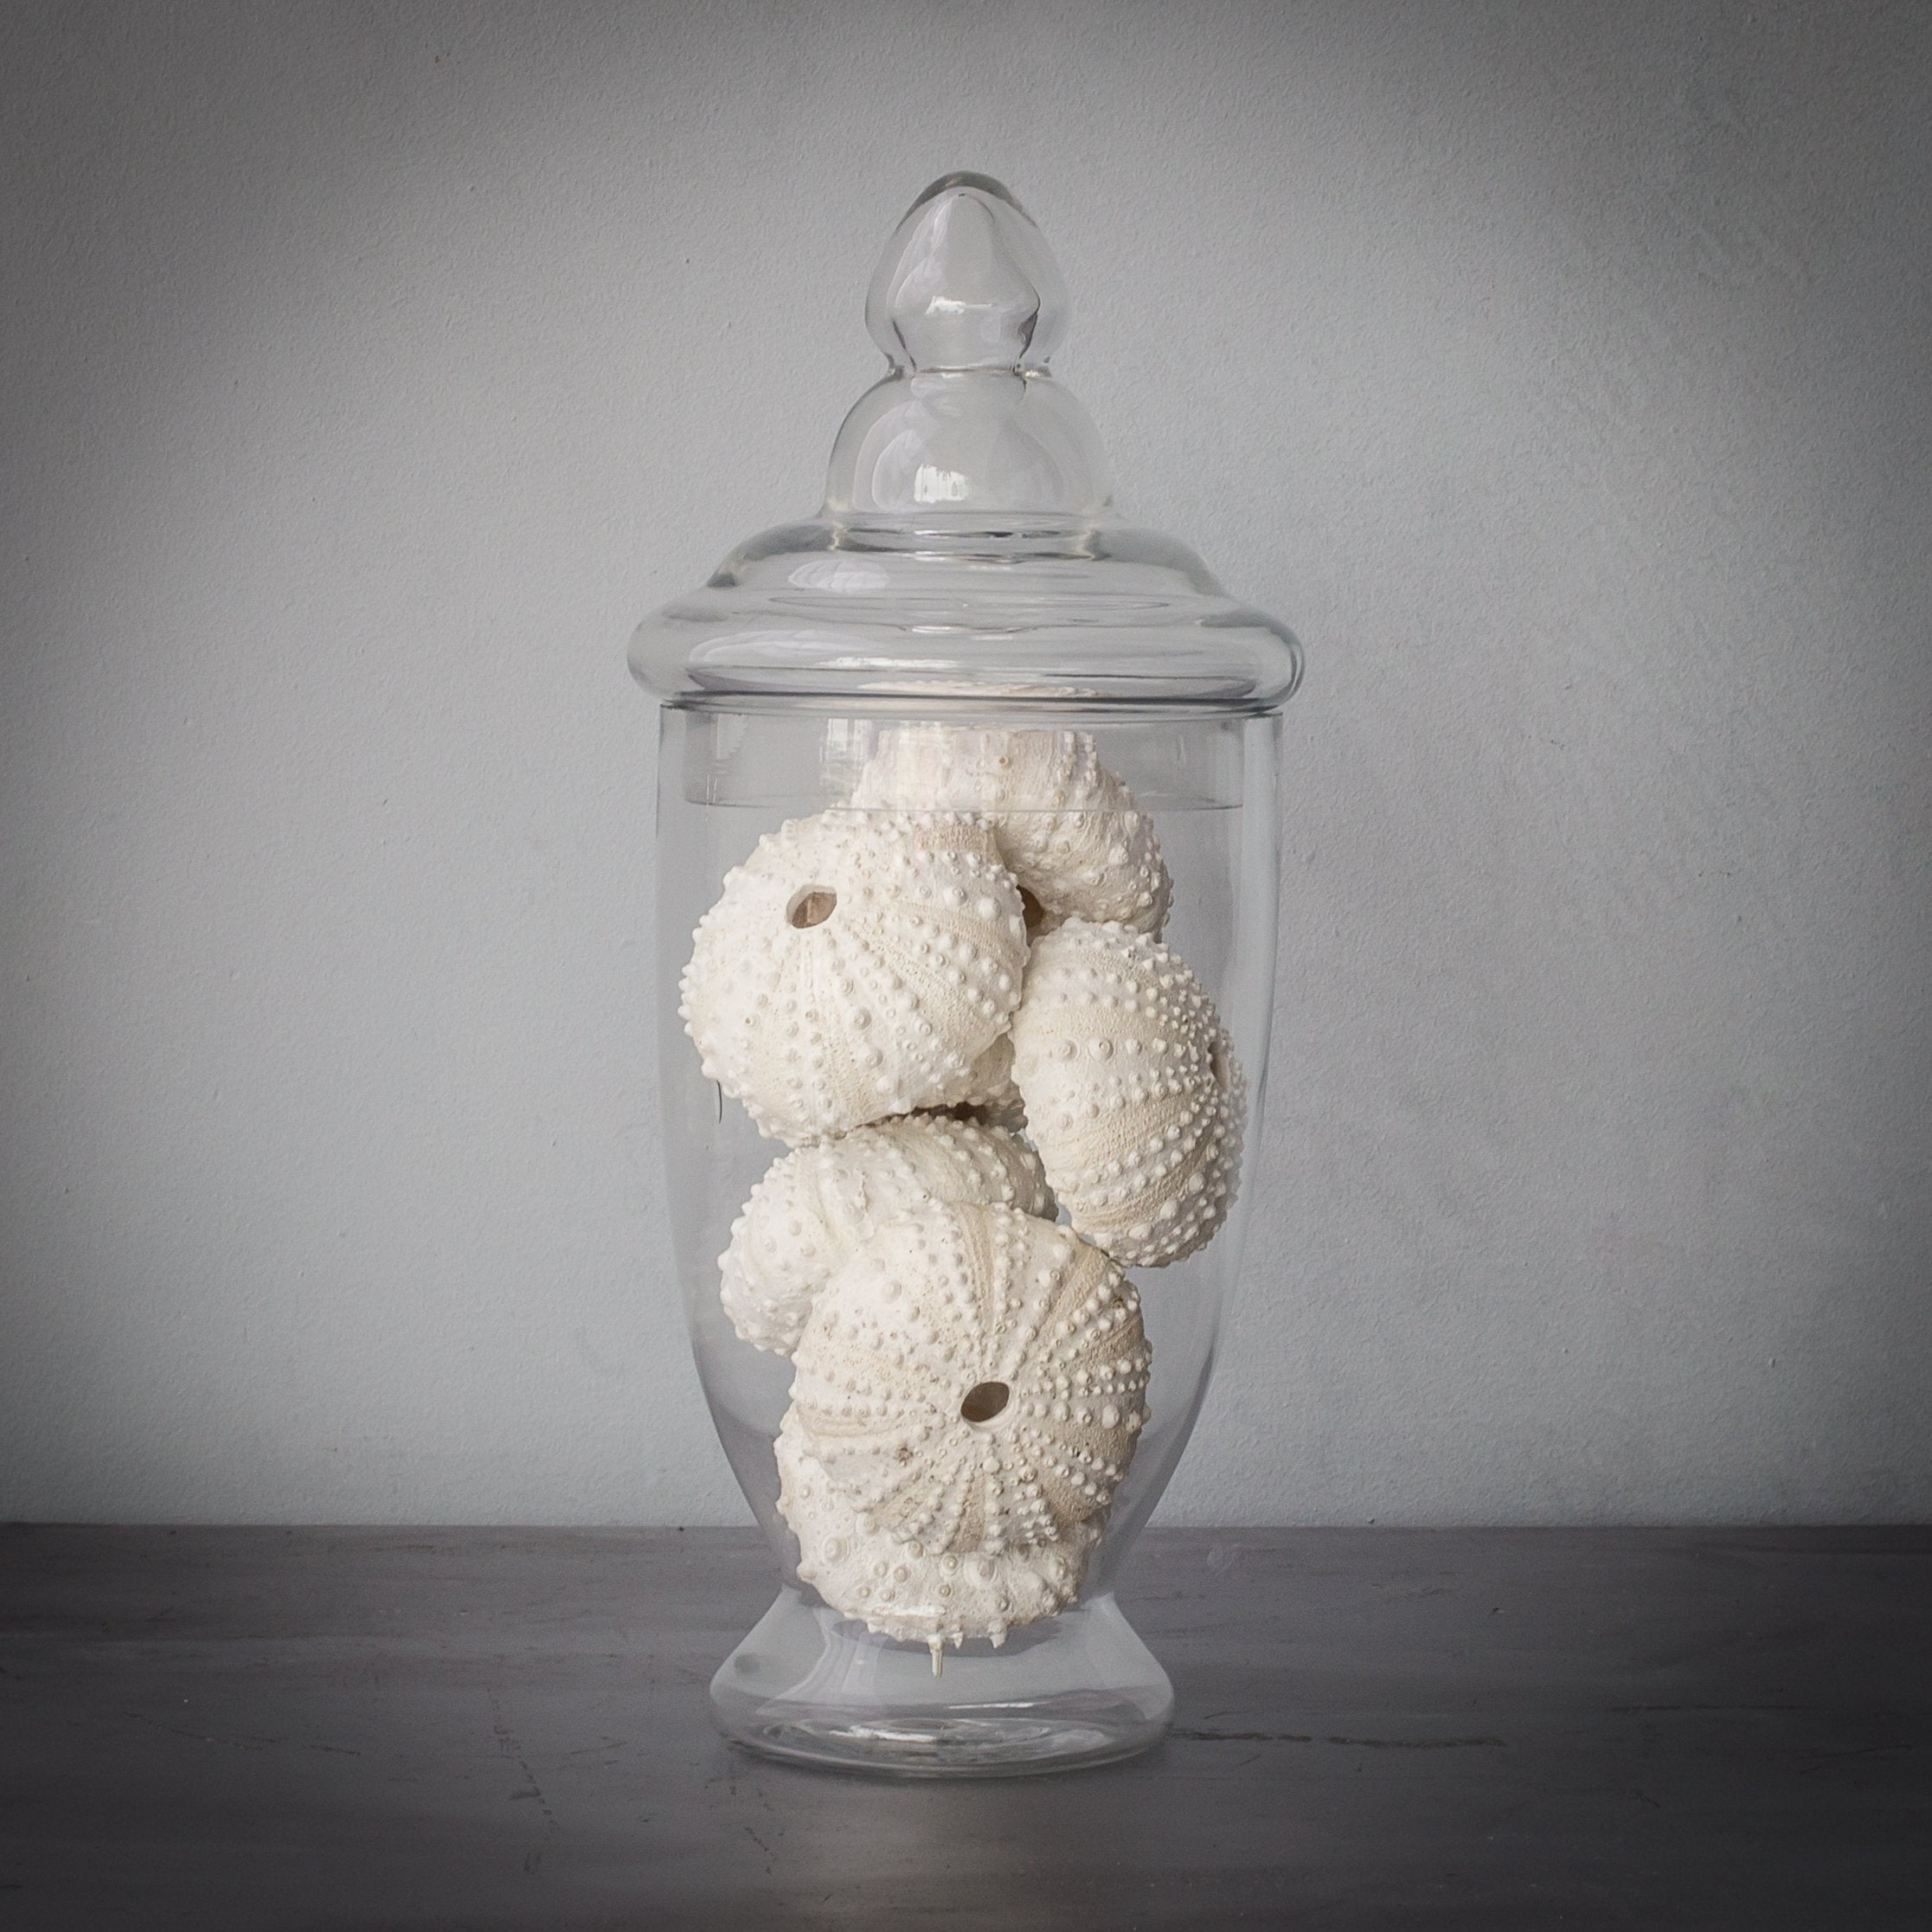 Faux - Small Glass Apothecary Jar With Sea Urchins